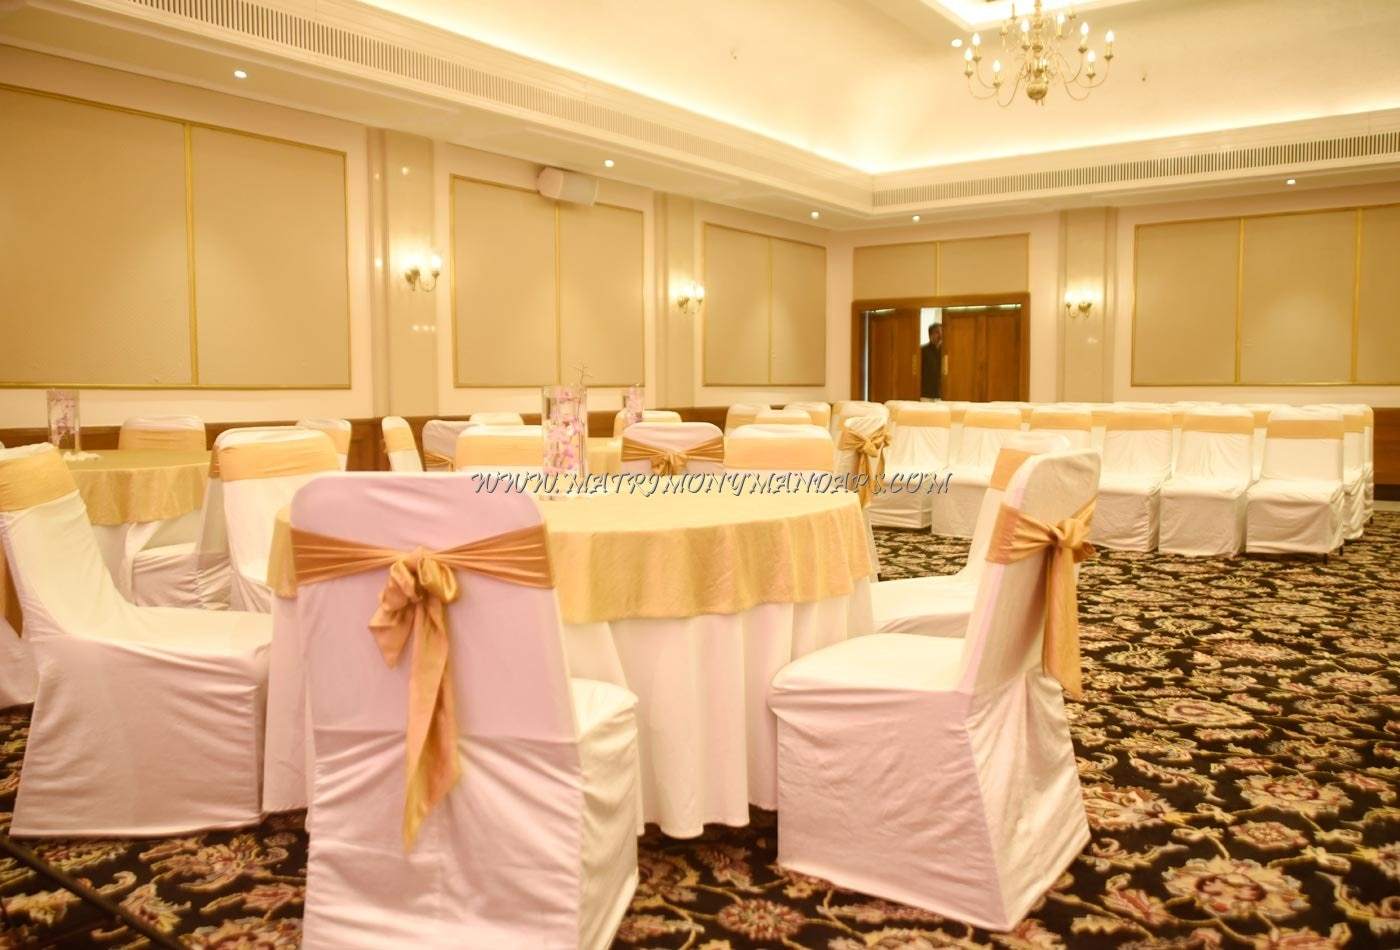 Find the availability of the Casino Hotel - Durbar Hall (A/C) in Willingdon Island, Kochi and avail special offers